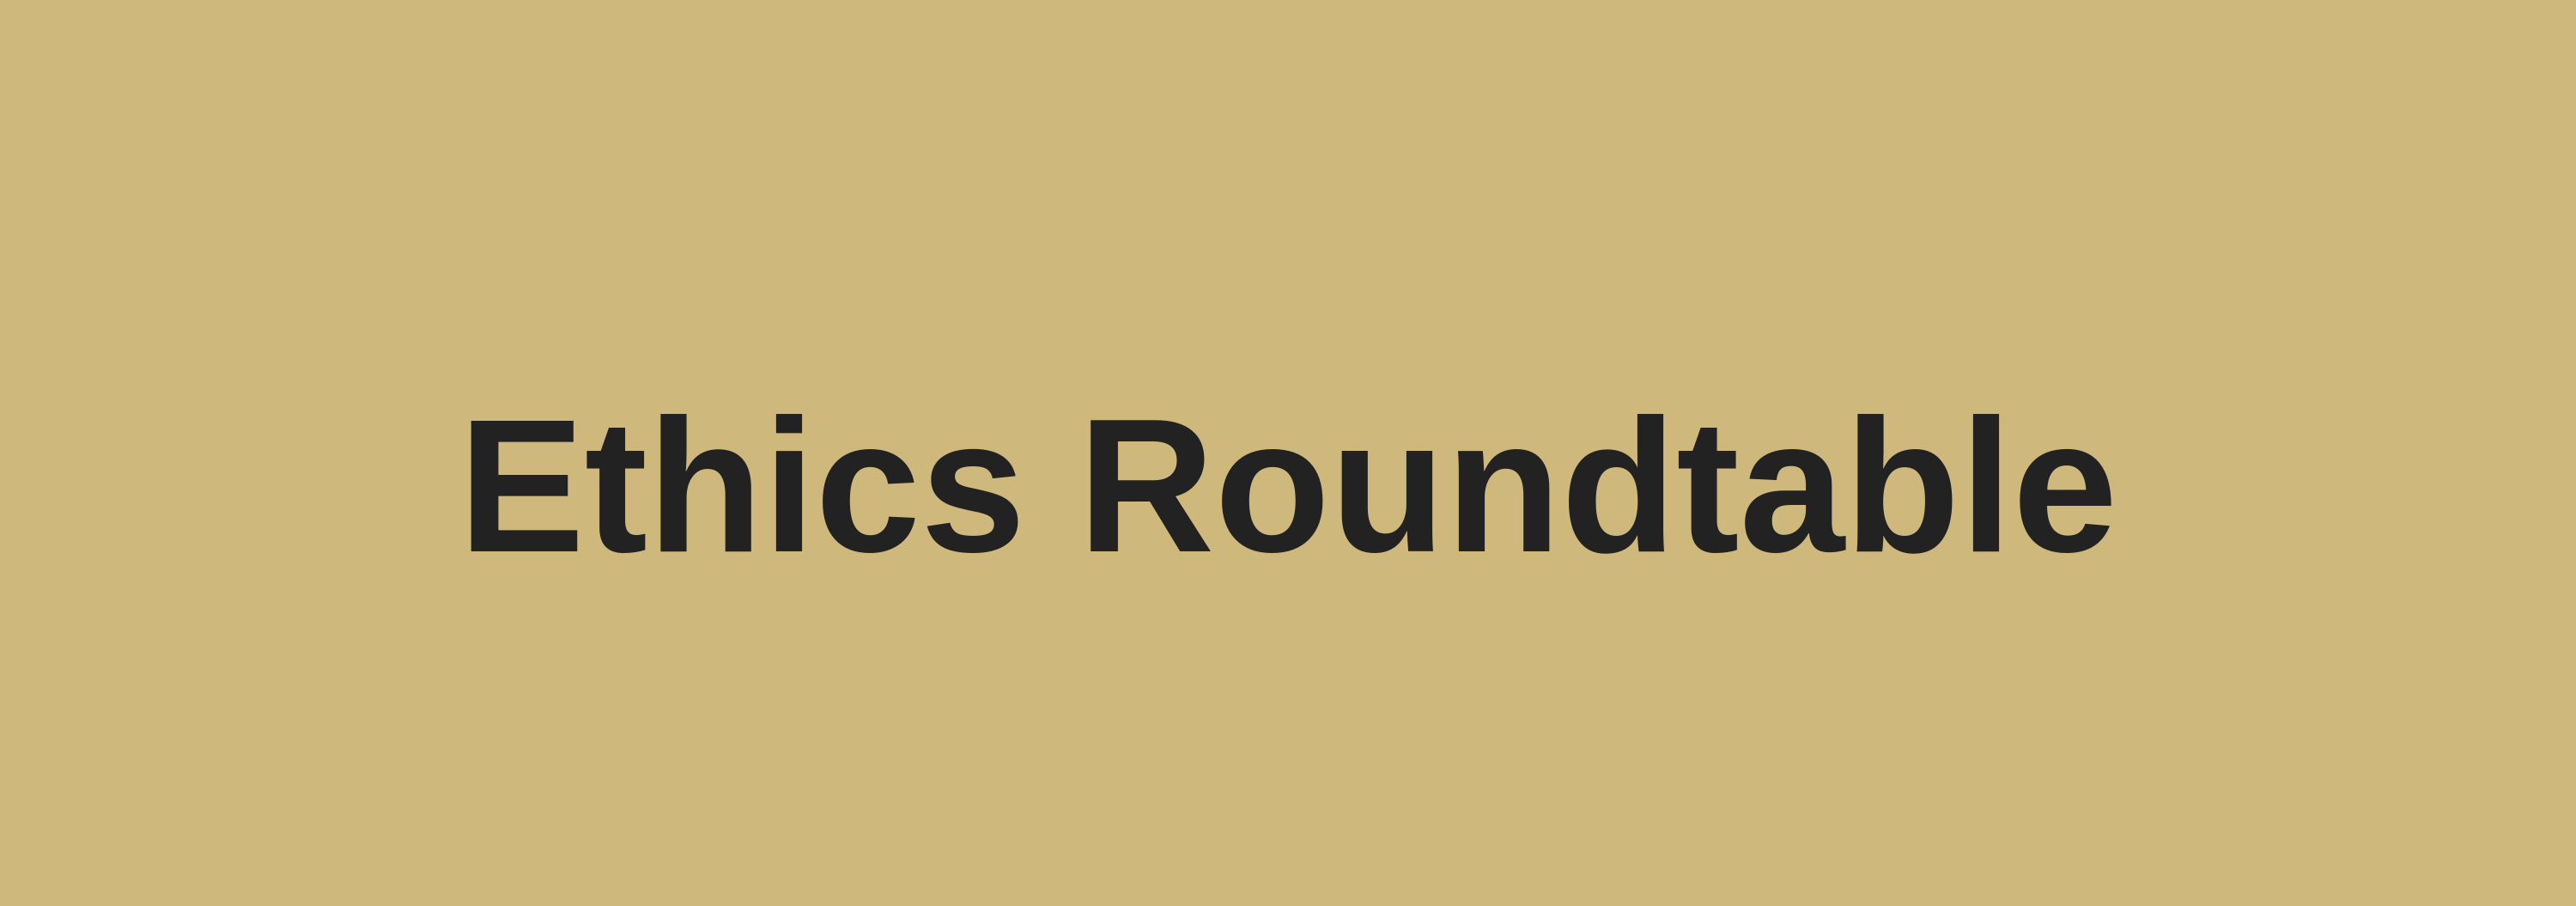 October Ethics Roundtable